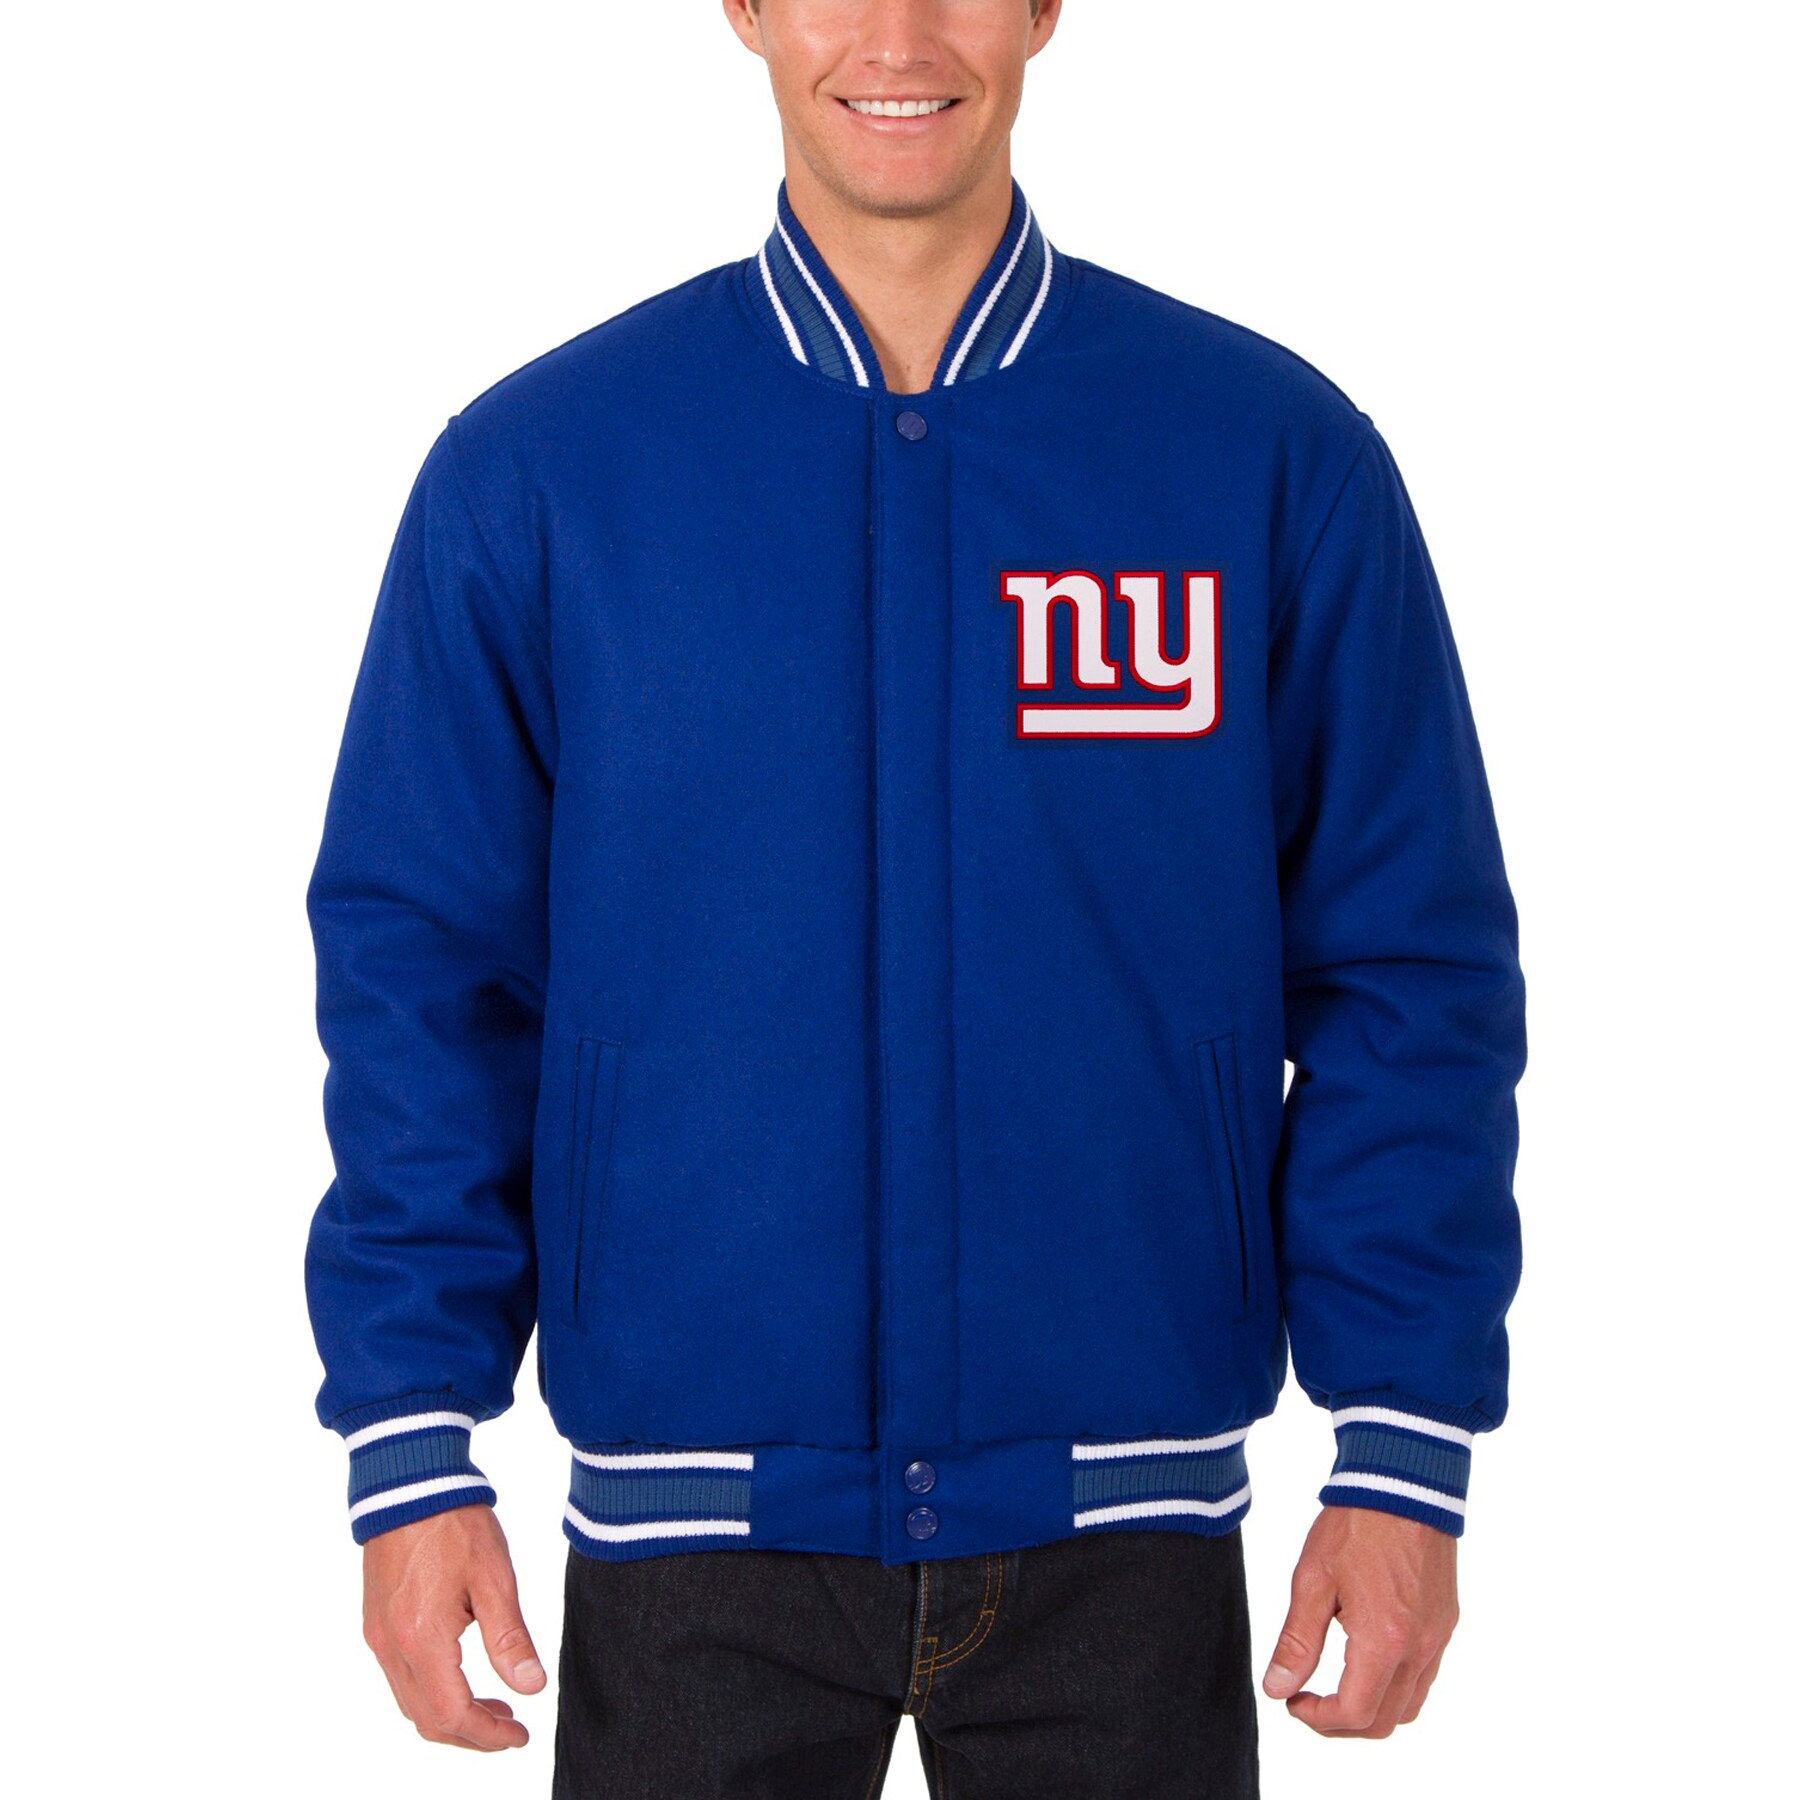 New York Giants JH Design Wool Reversible Jacket with Embroidered Logos - Royal